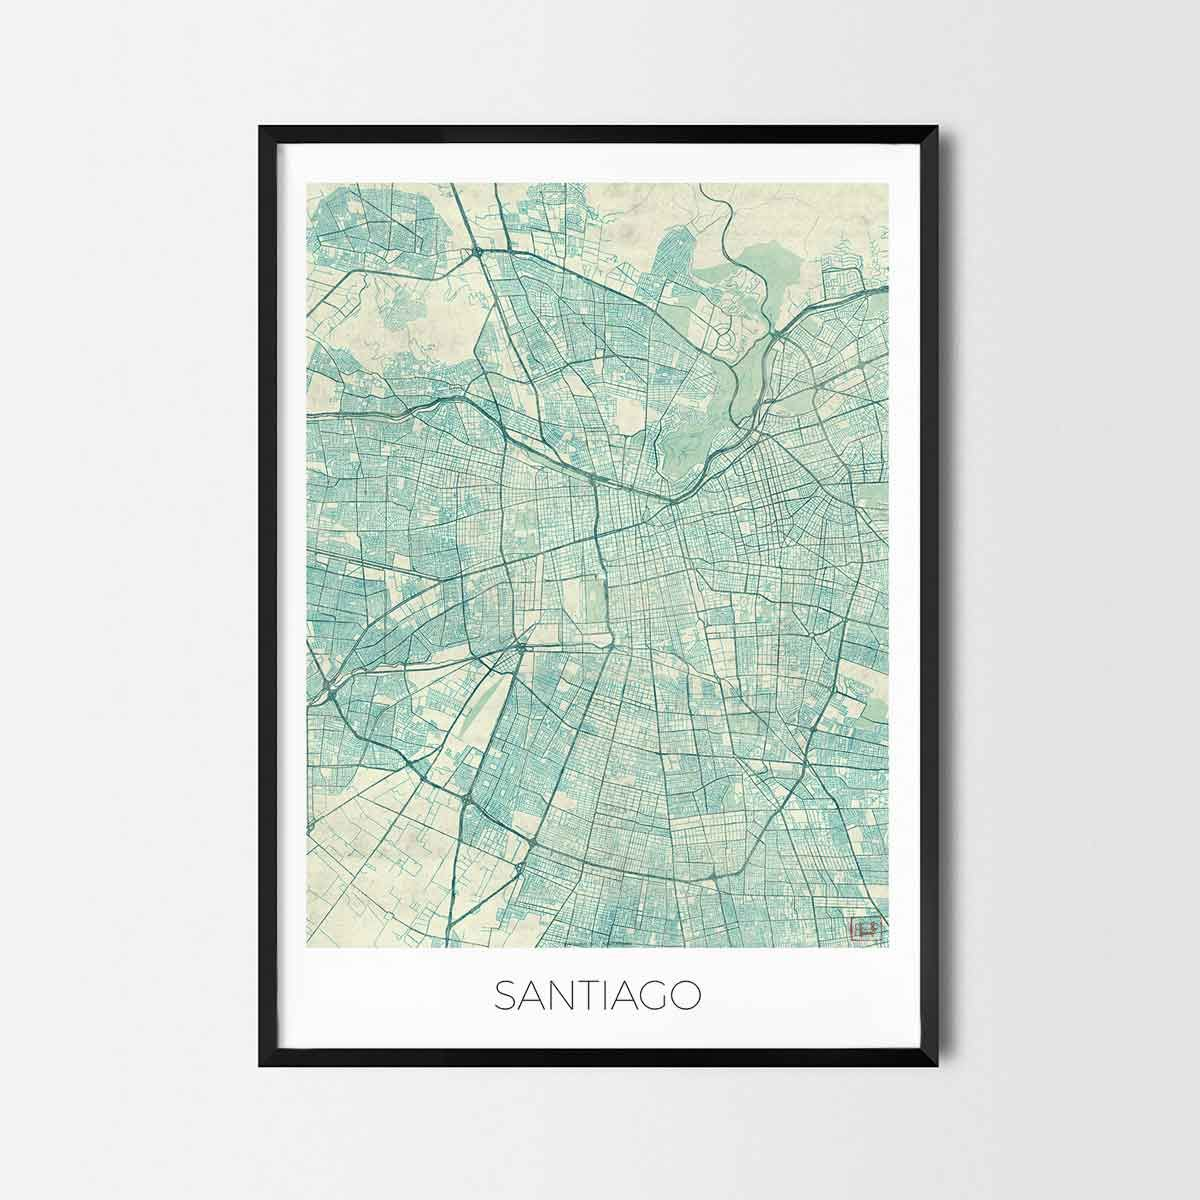 Santiago art posters city art map posters and prints santiago santiago art posters city art map posters and prints gumiabroncs Choice Image